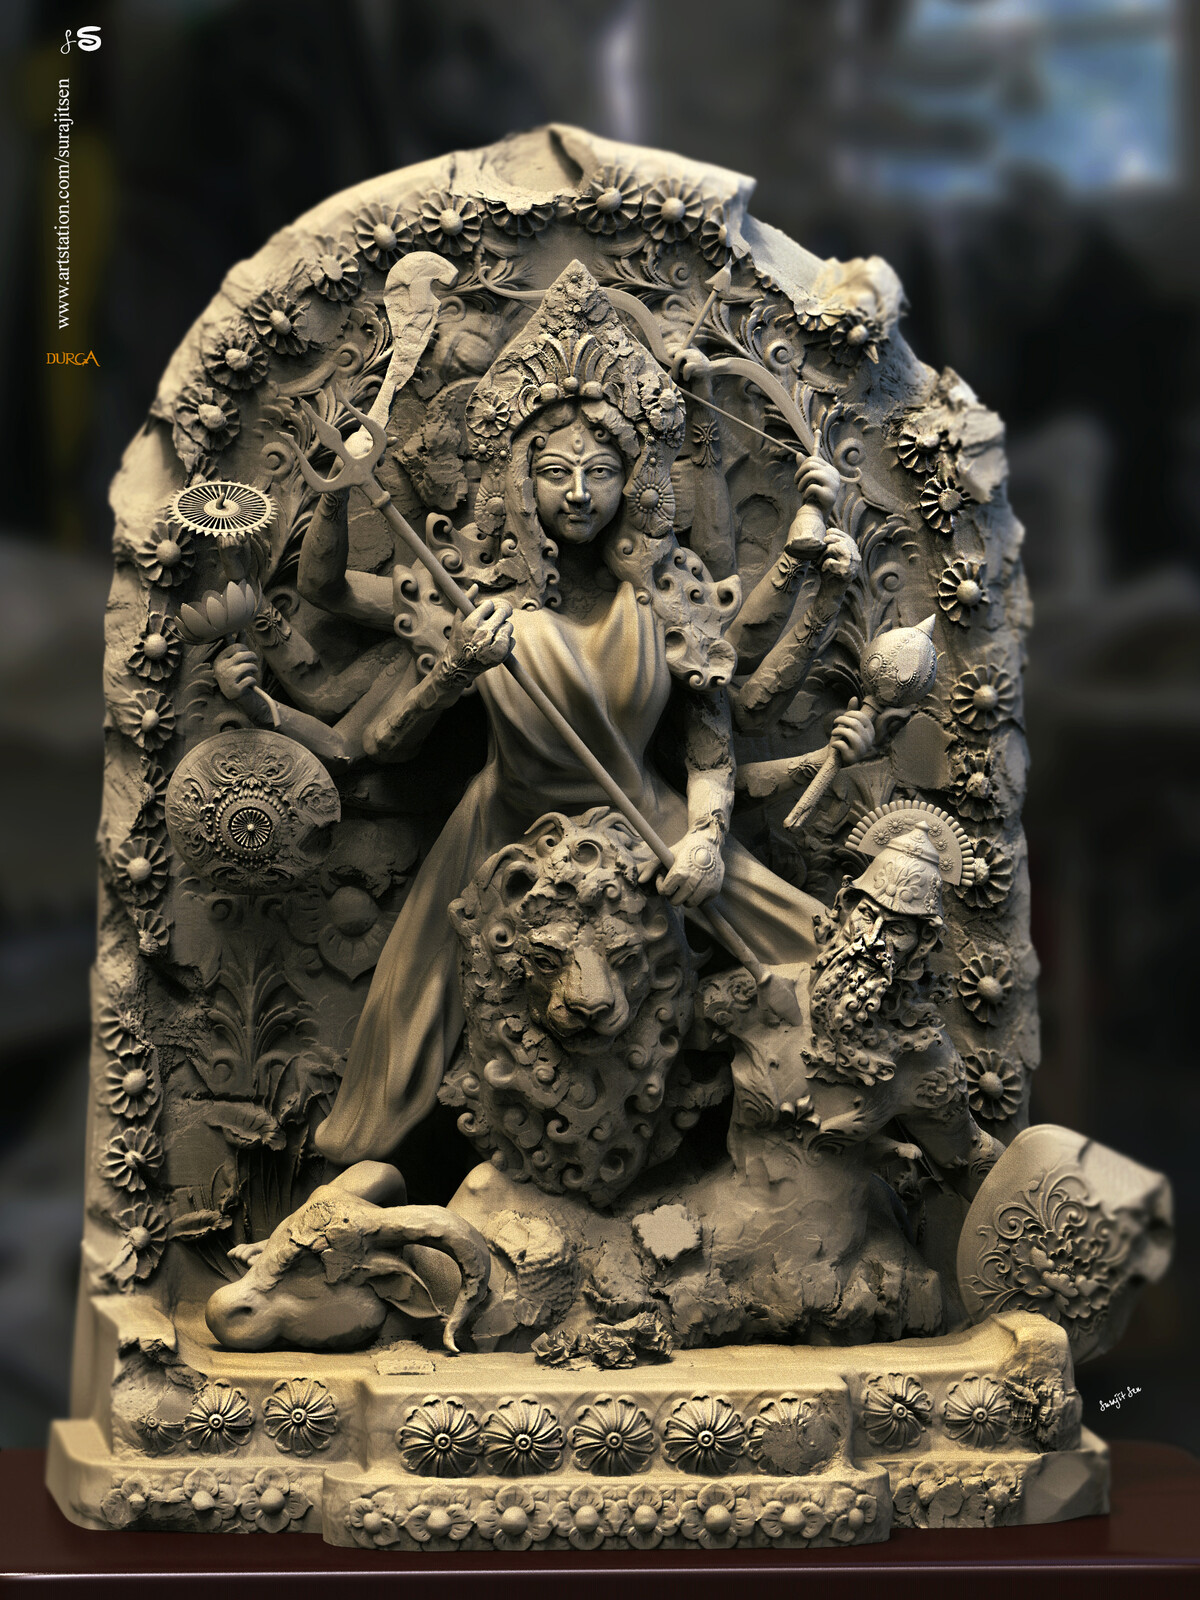 Wish to share one of my Digital Sculptures....